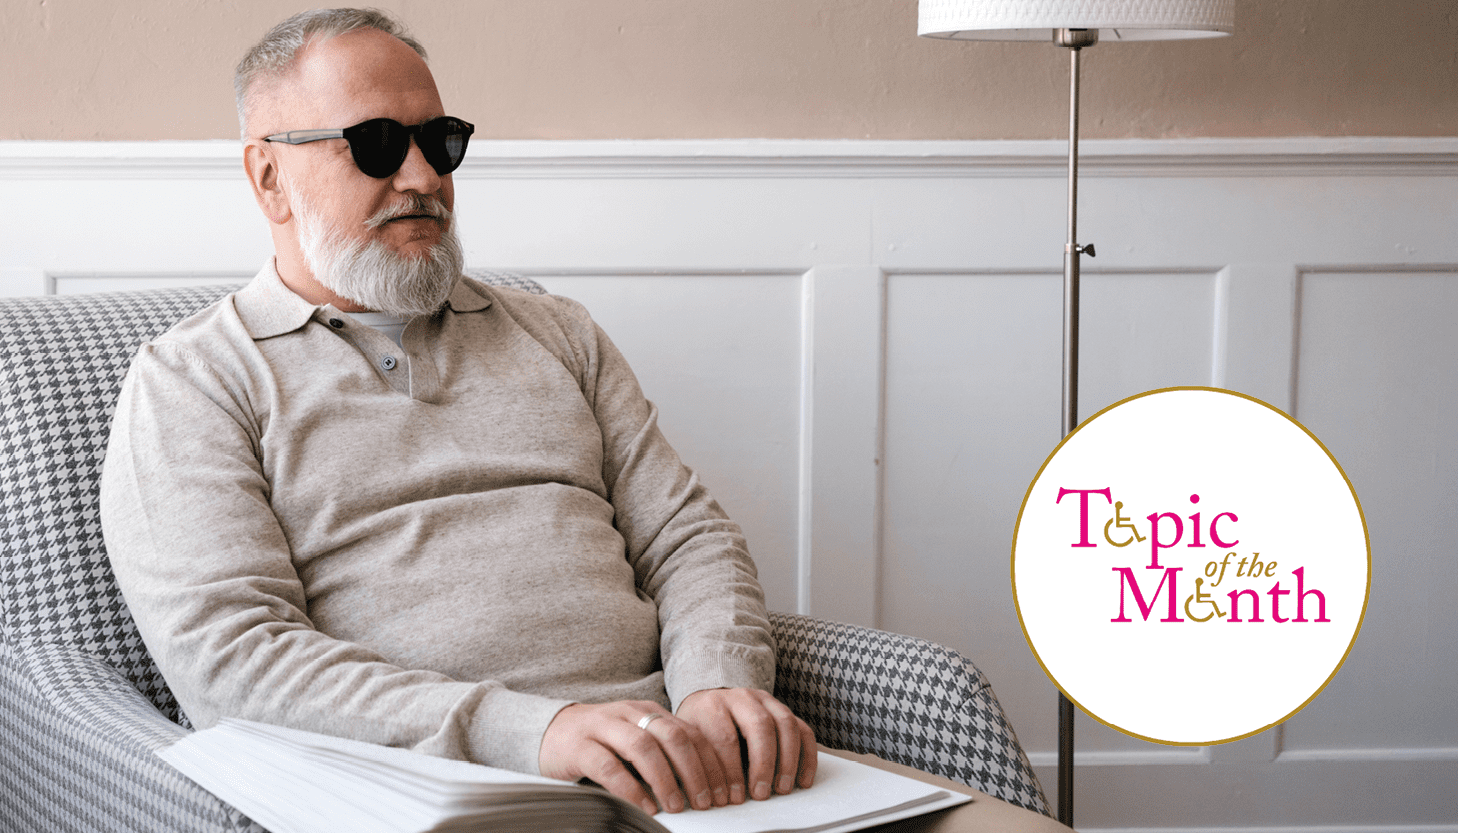 Blind man sitting in armchair reading with logo overlay saying Topic of Month